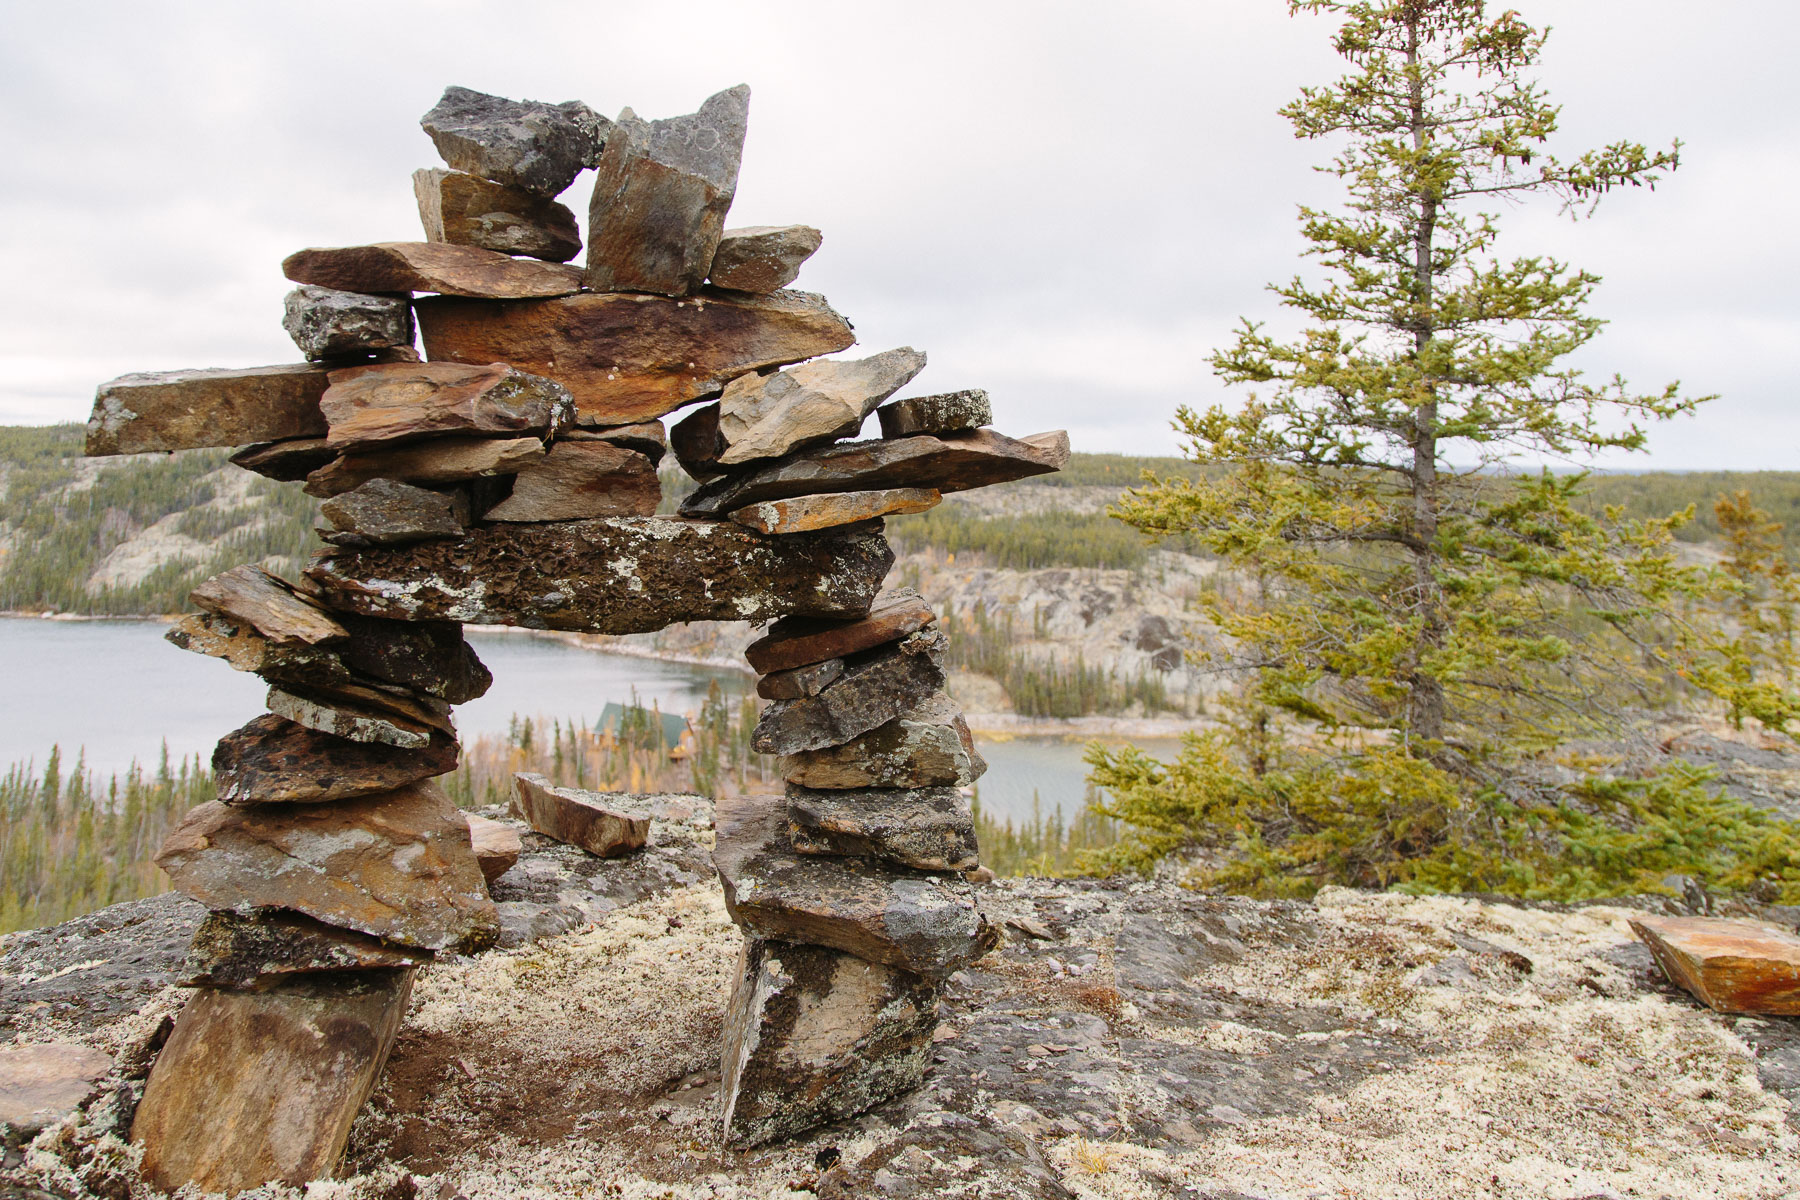 First Nations people built inukshuks like this one as markers and spiritual symbols.